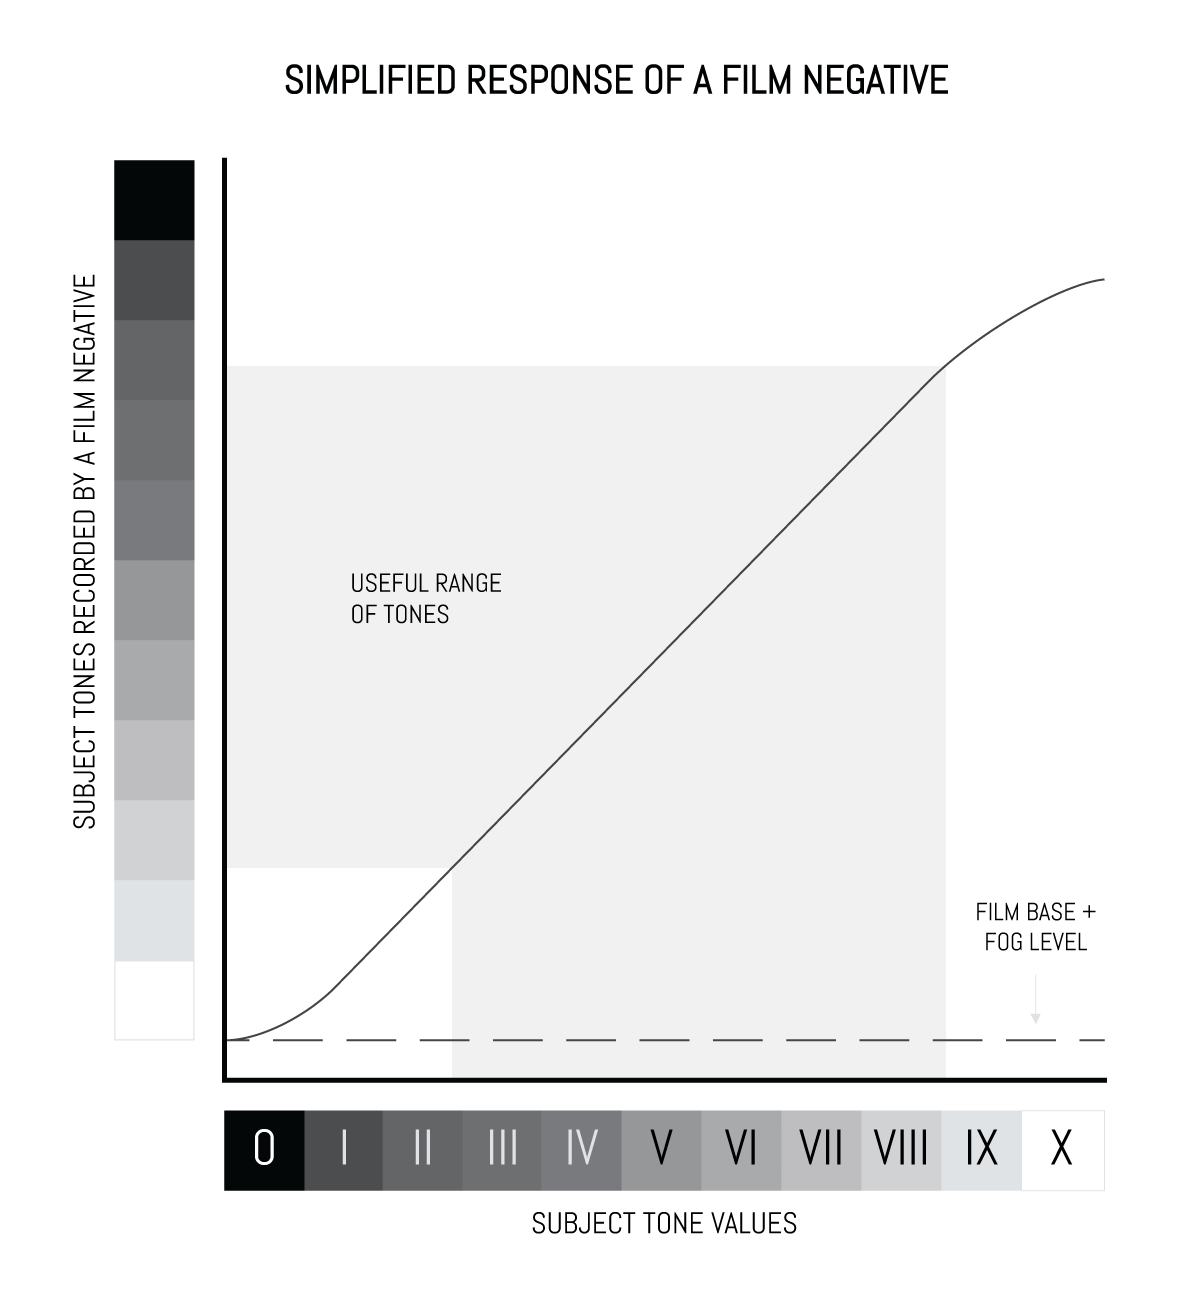 Simplified response of a film negative